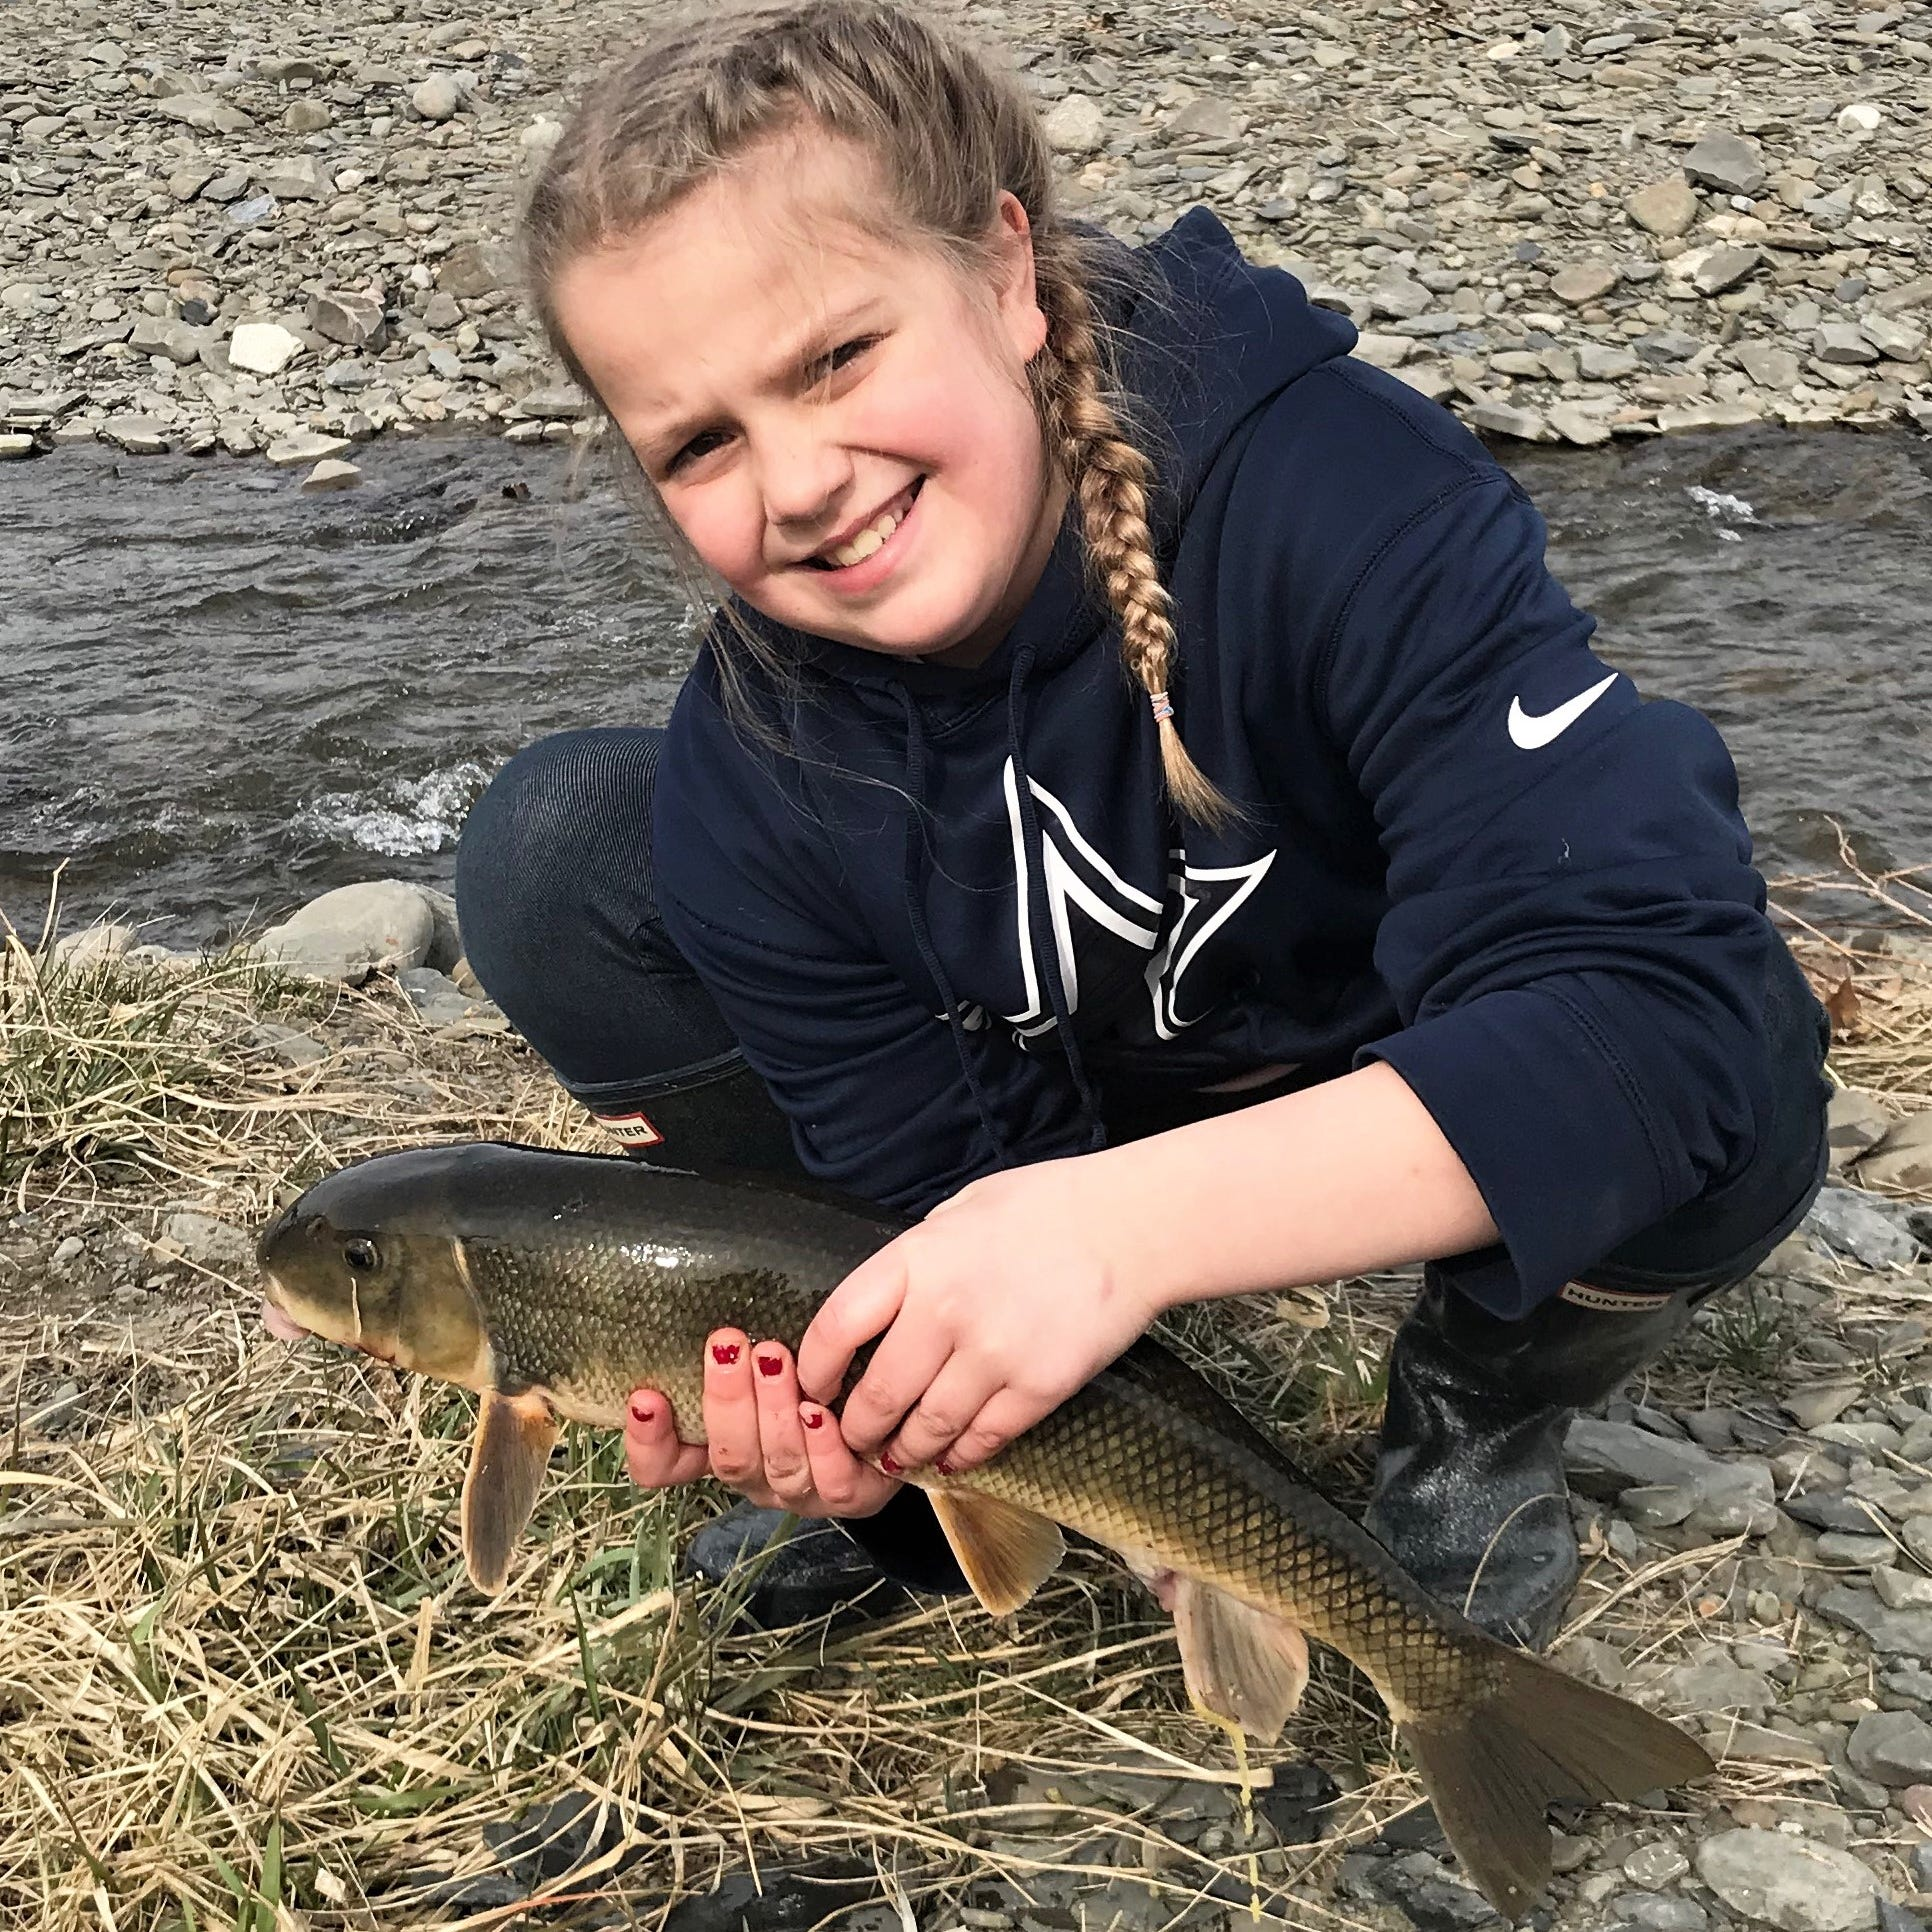 Four generations of Southern Tier family enjoy fishing and the outdoors